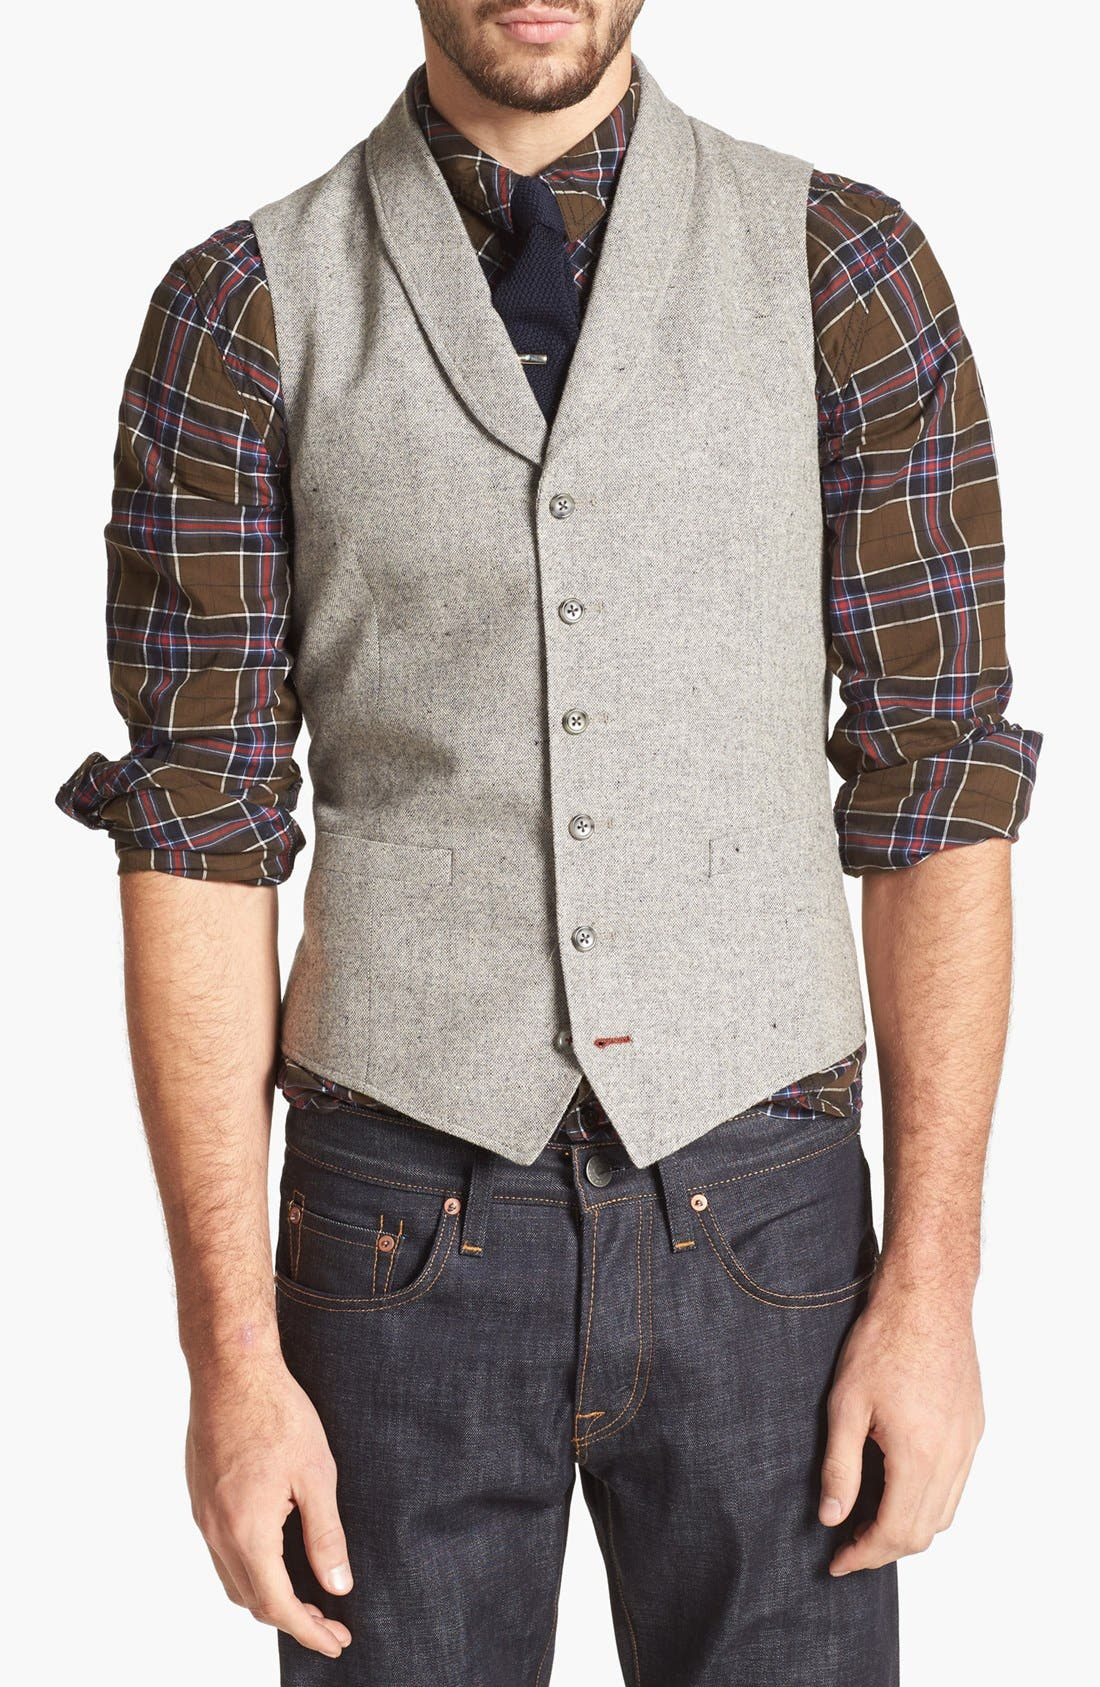 Main Image - 1901 Shawl Collar Grey Flannel Vest